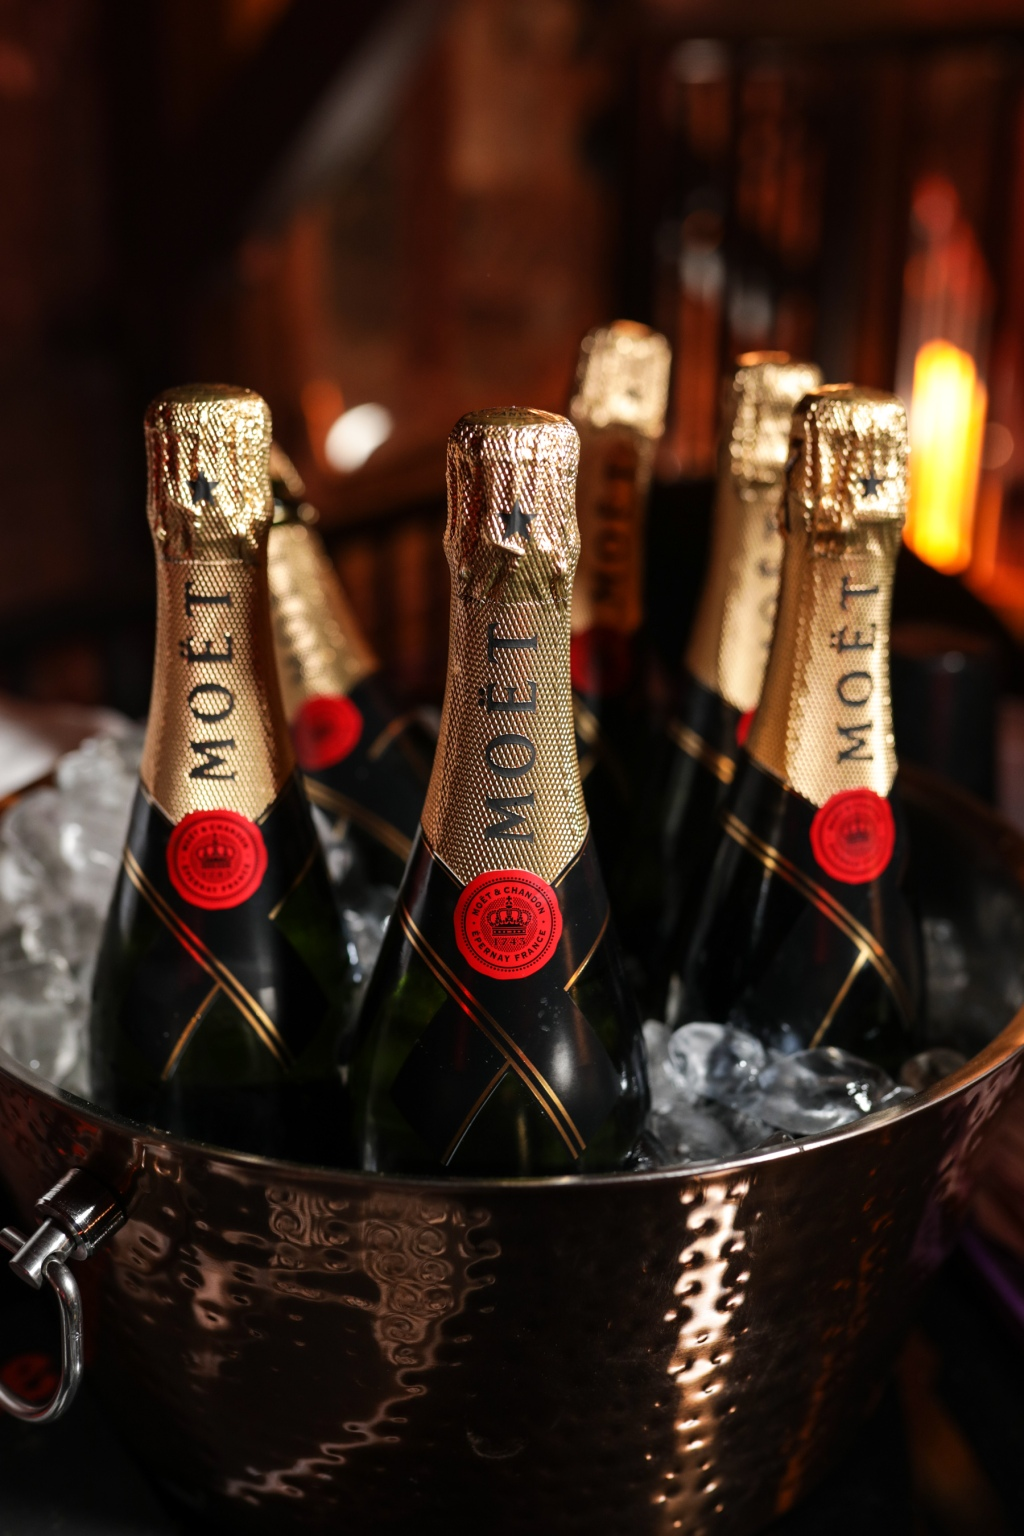 Moët kept fans' glasses full throughout the party